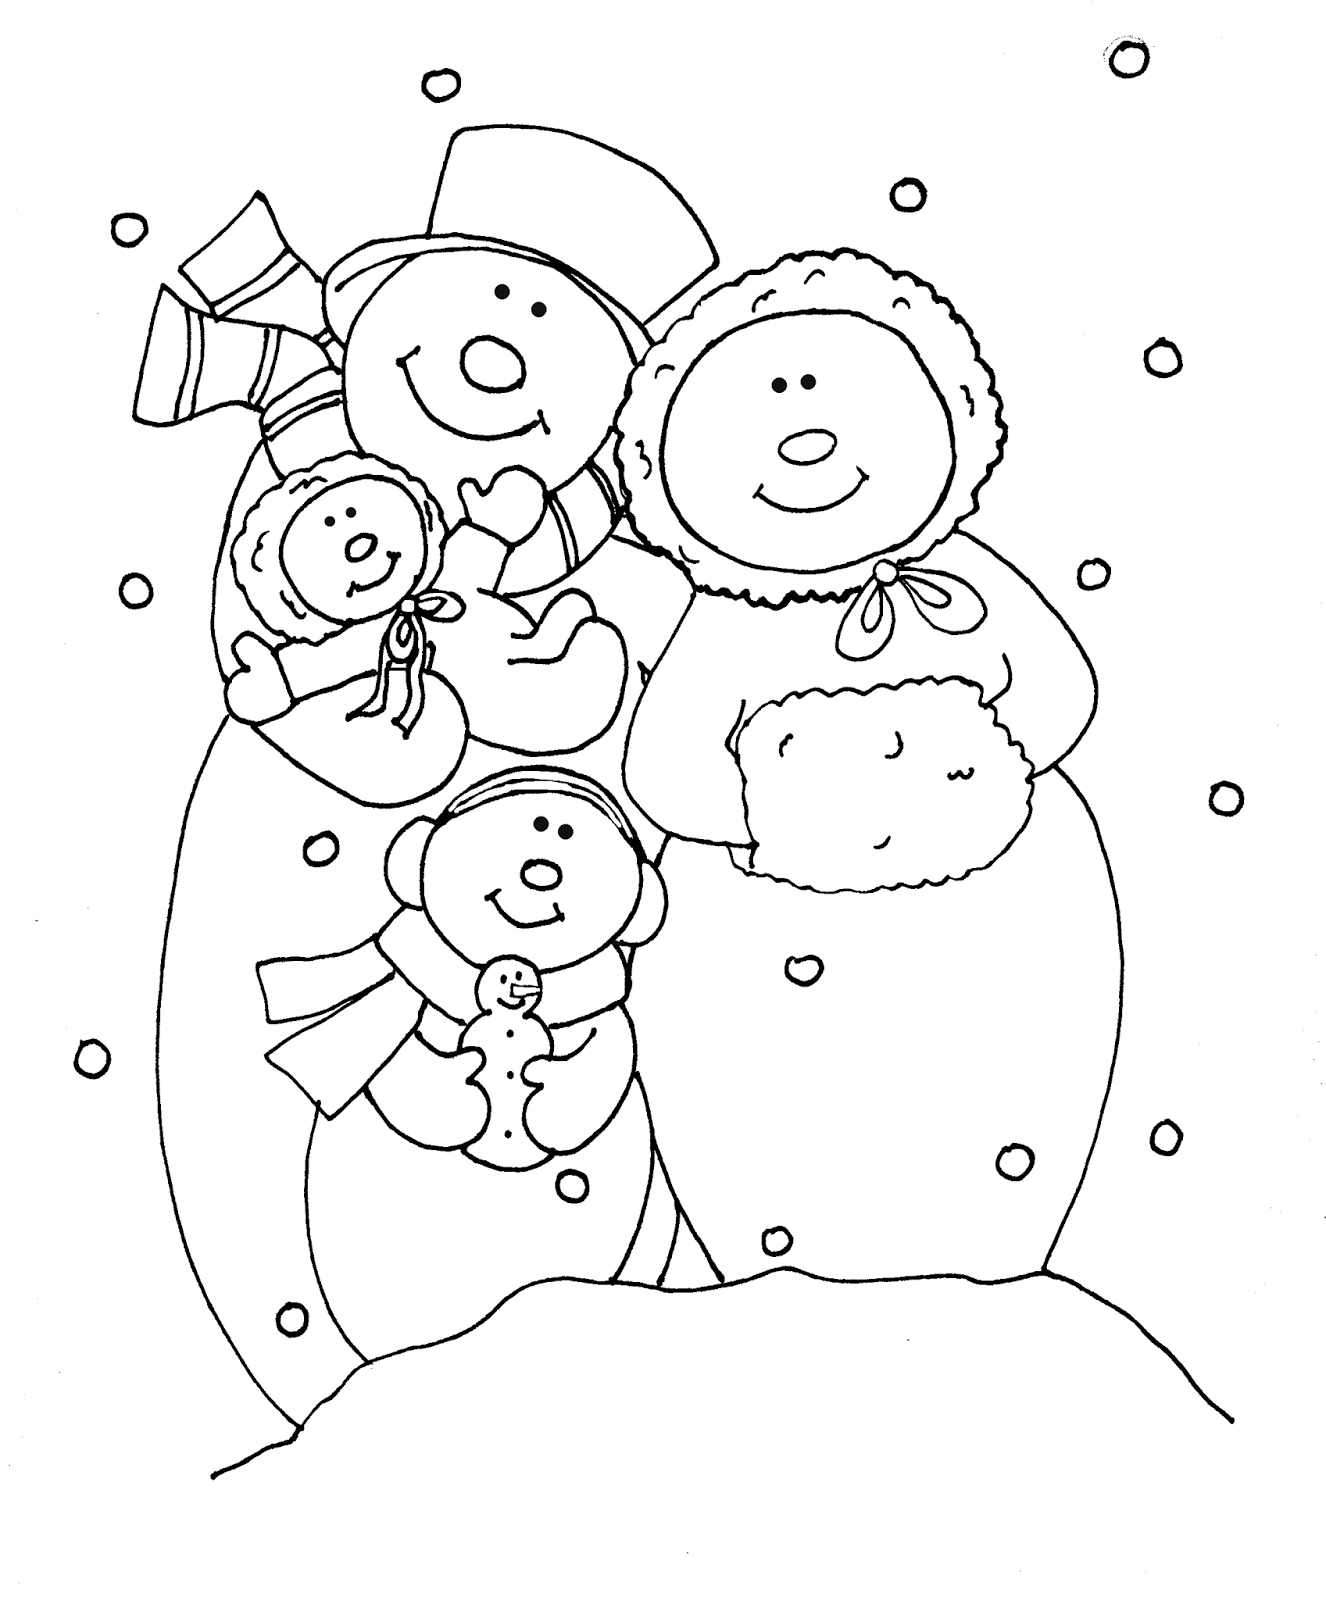 snowman family coloring pages - free dearie dolls digi stamps snowman family